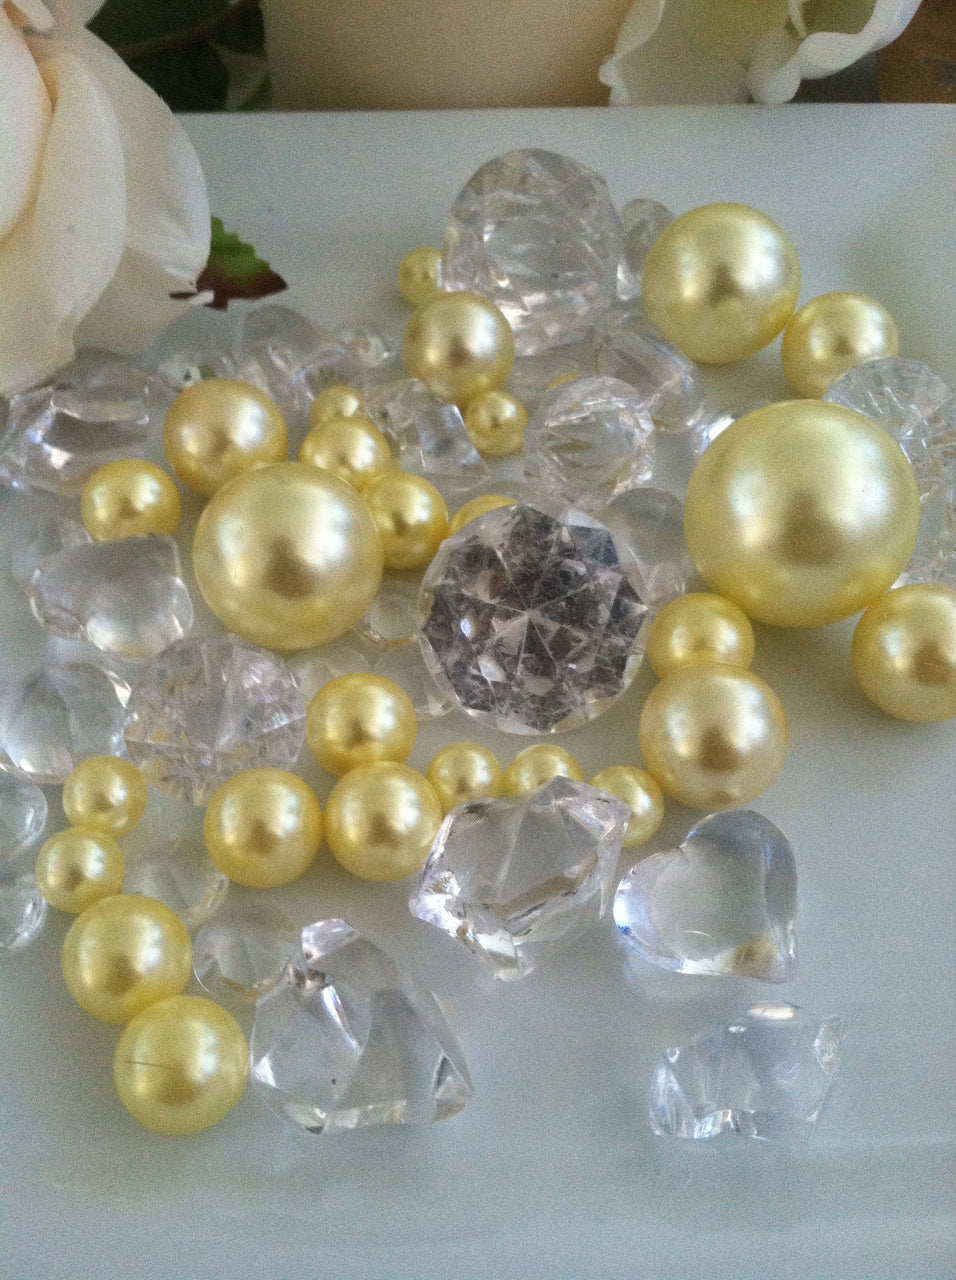 80pc Yellow Pearl & Clear Diamond Gems Table Scatter, Vase Filler Diamonds & Pearls